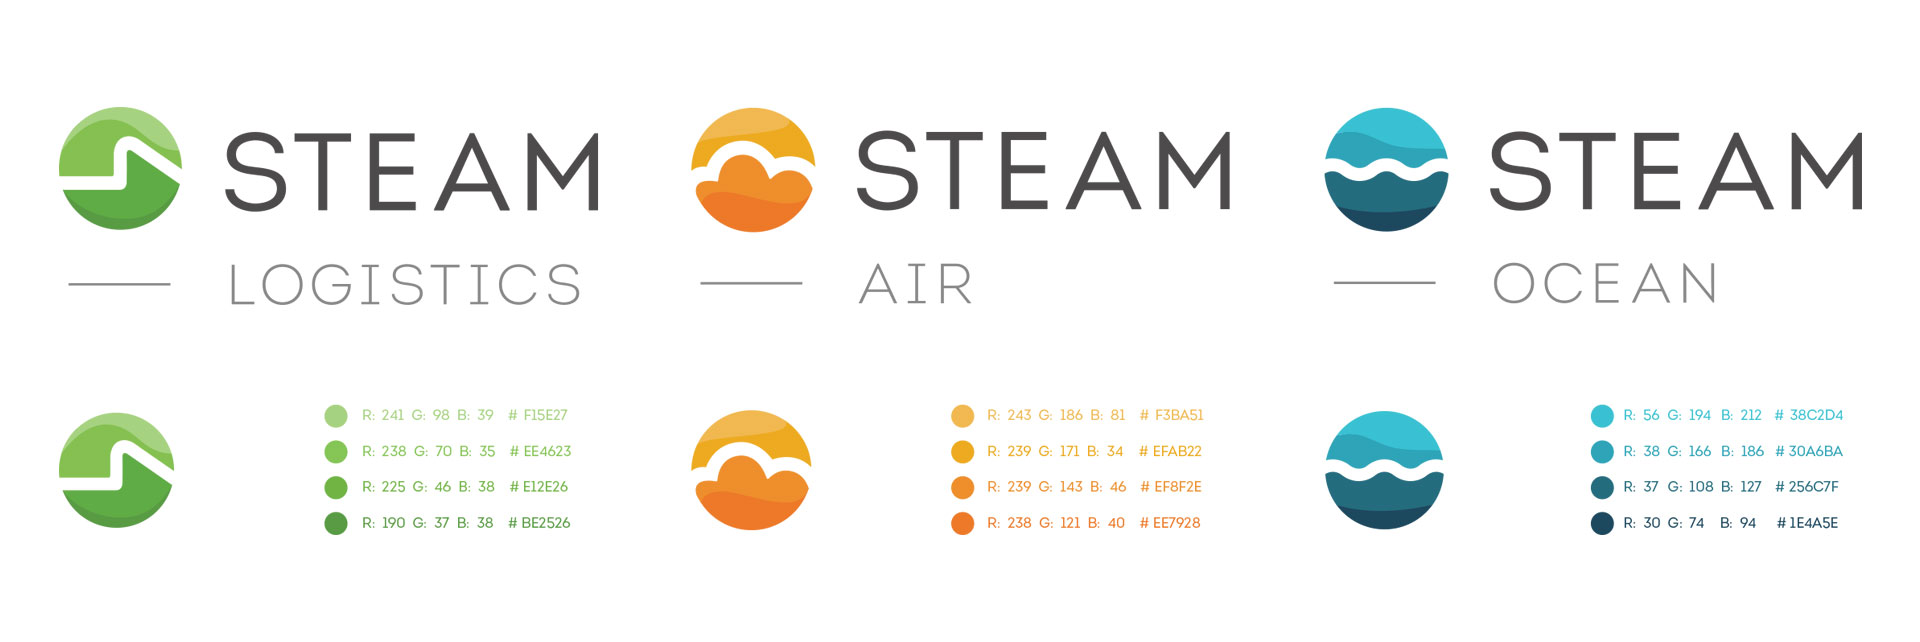 Tiny Giant - Steam Logistics - Logos, Icons, and Color Palettes